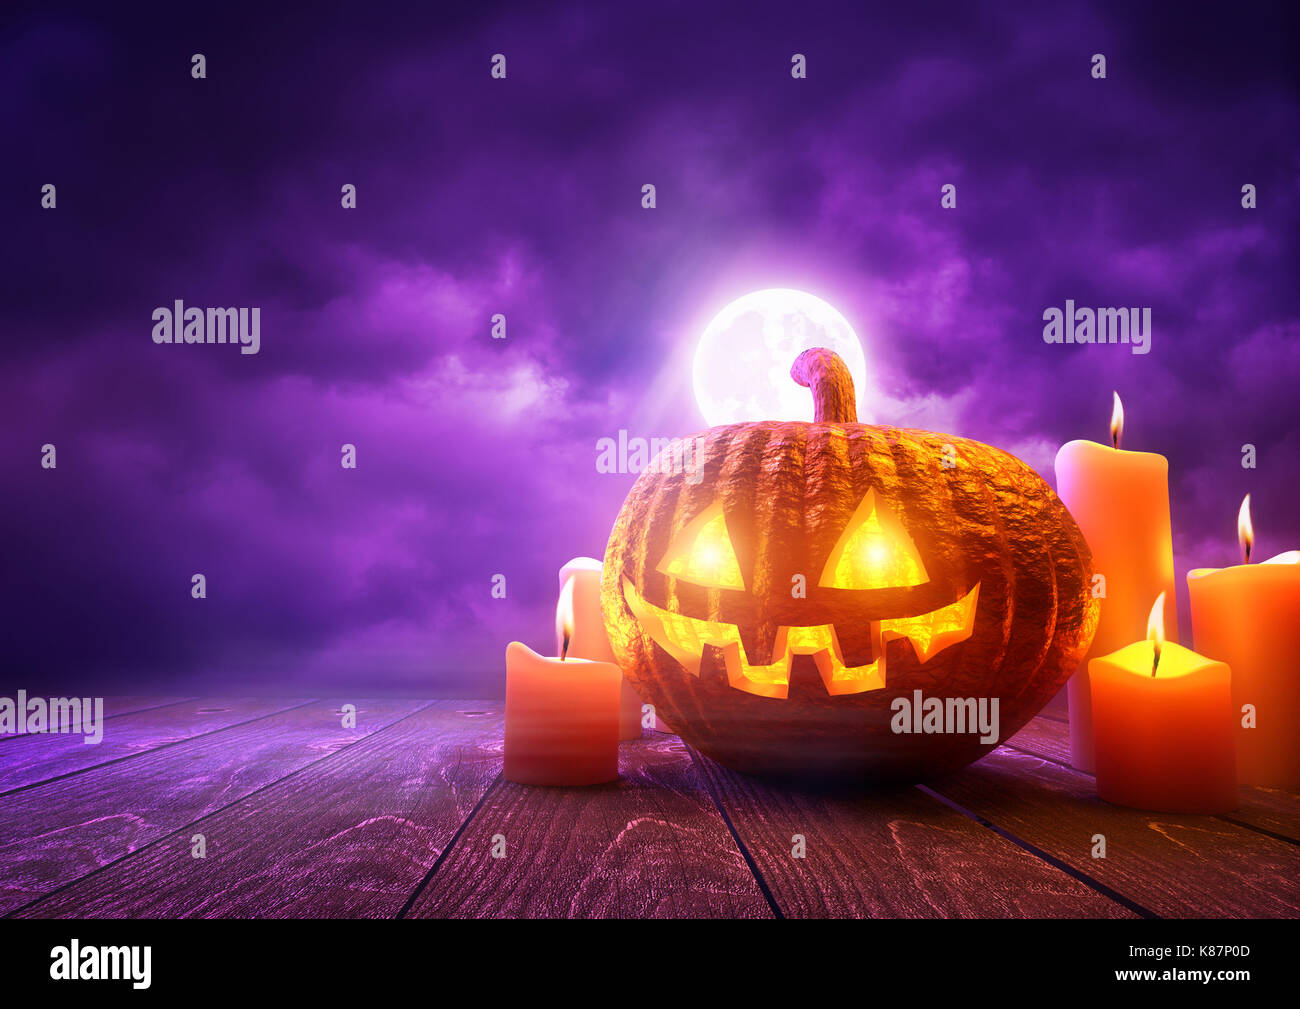 Une citrouille jack-o-lantern contre purple sky background sur halloween, technique mixte illustration. Photo Stock